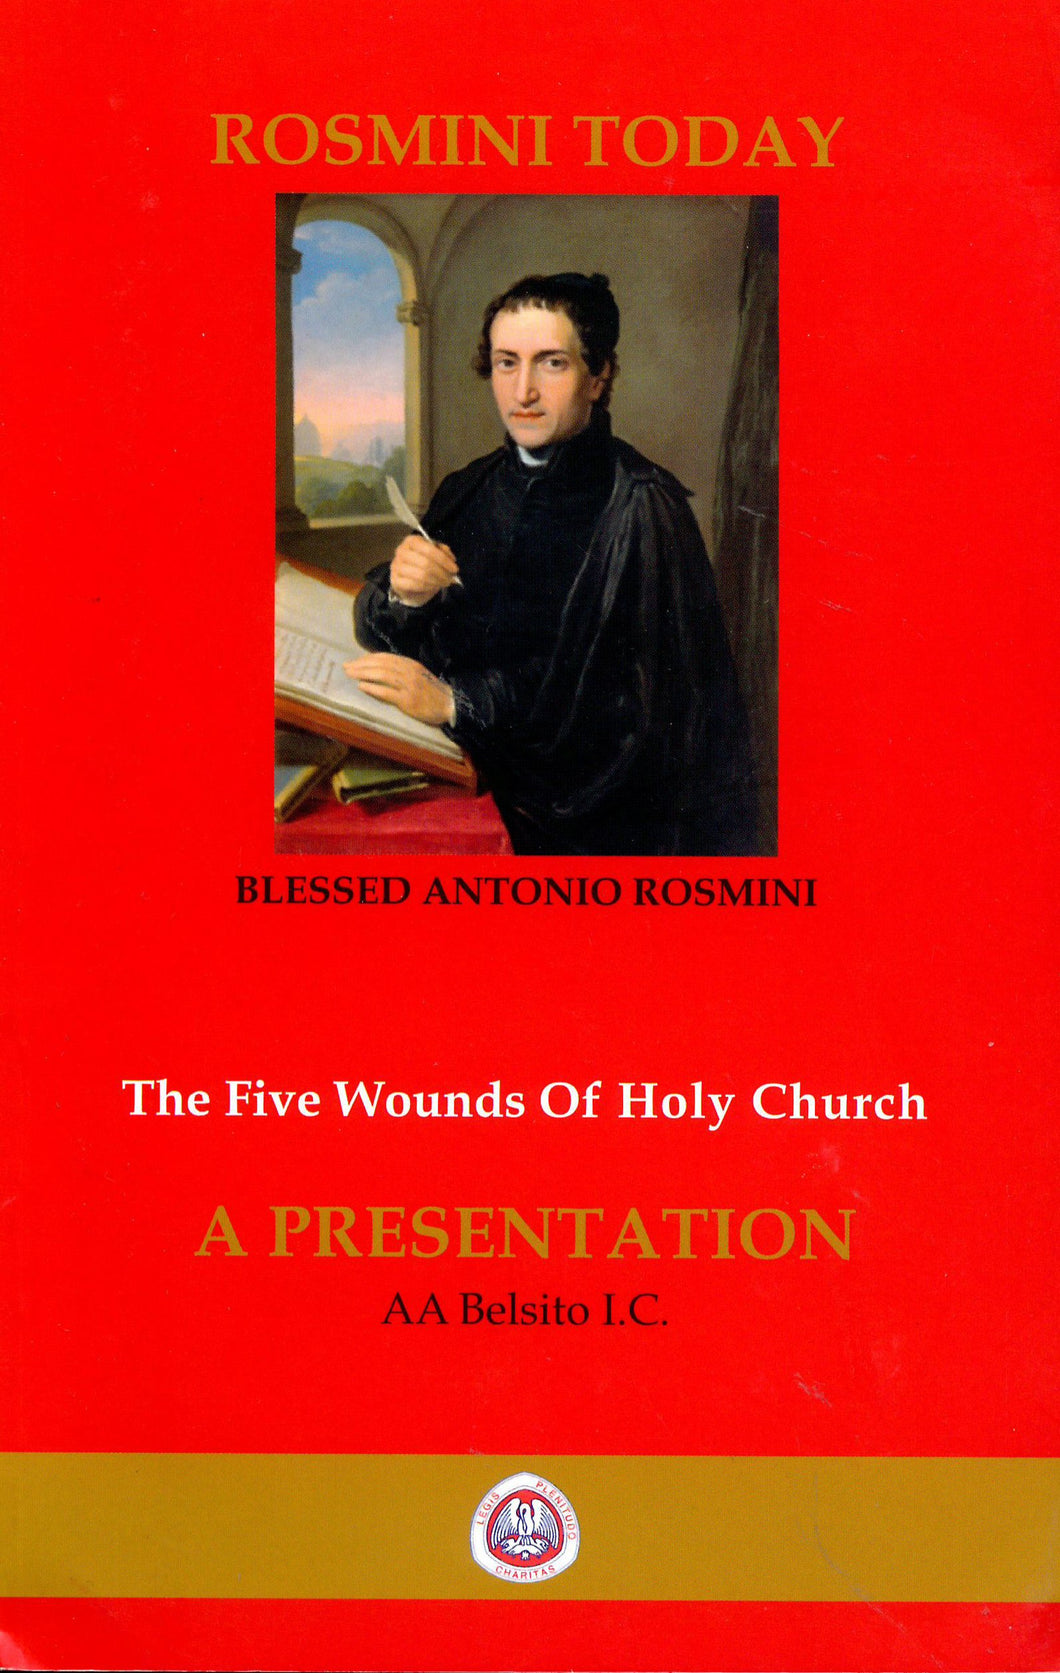 Rosmini Today: The Five Wounds Of Holy Chuch - A Presentation